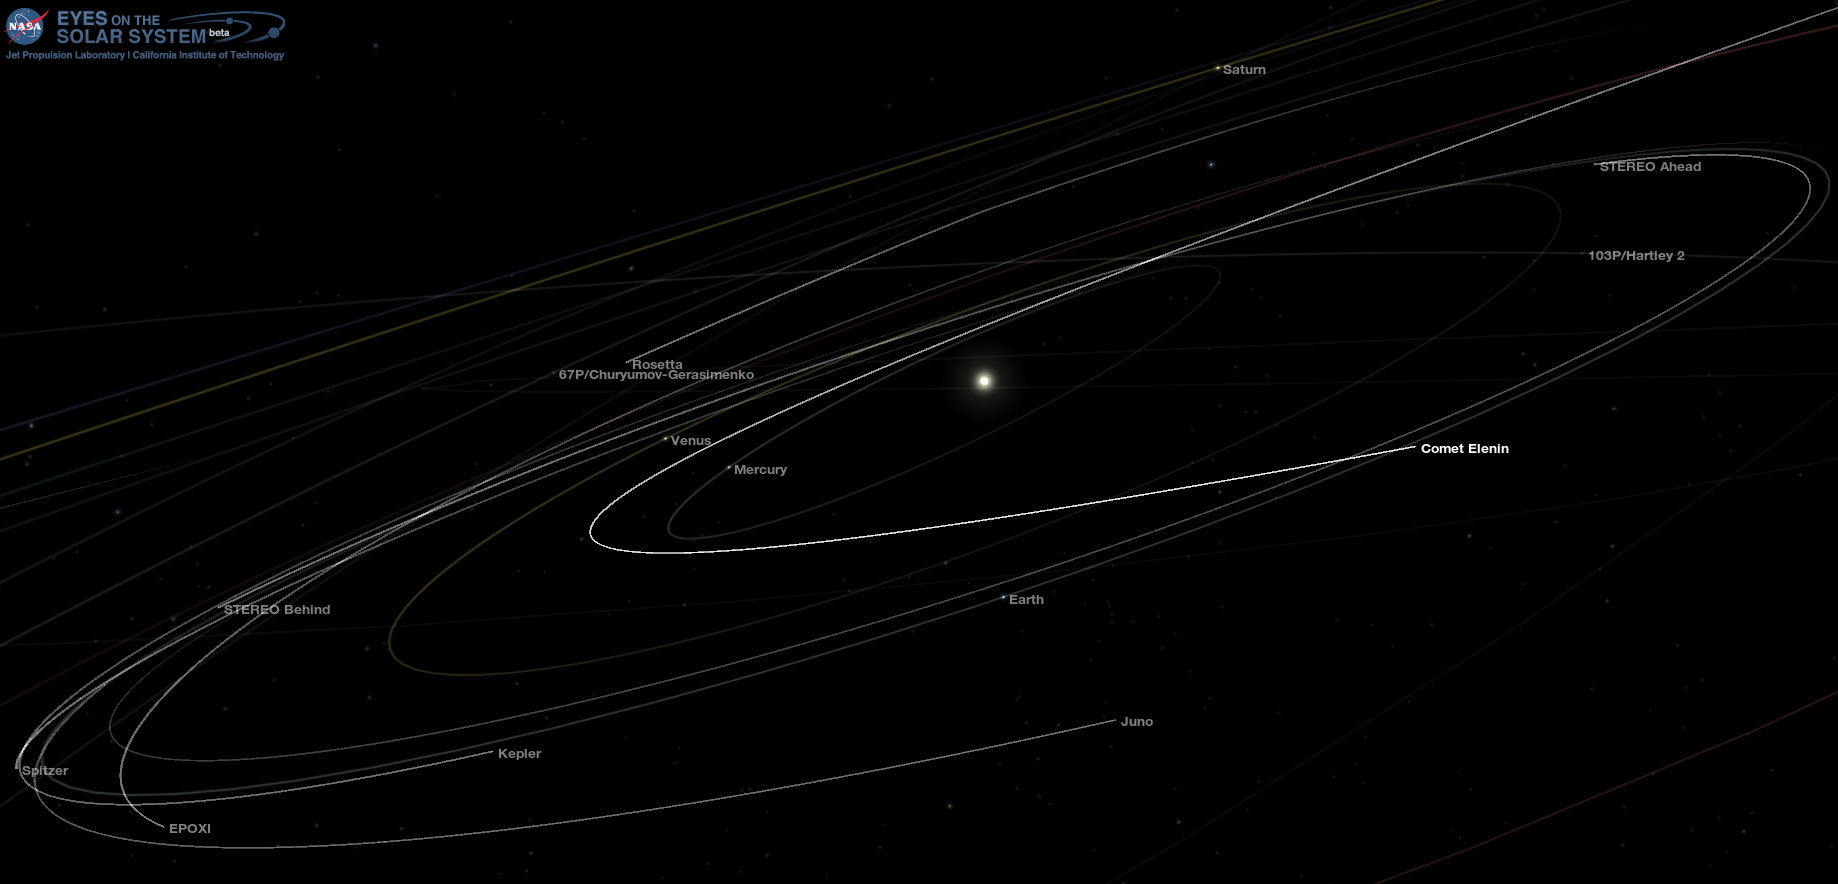 The Trajectory of Comet Elenin